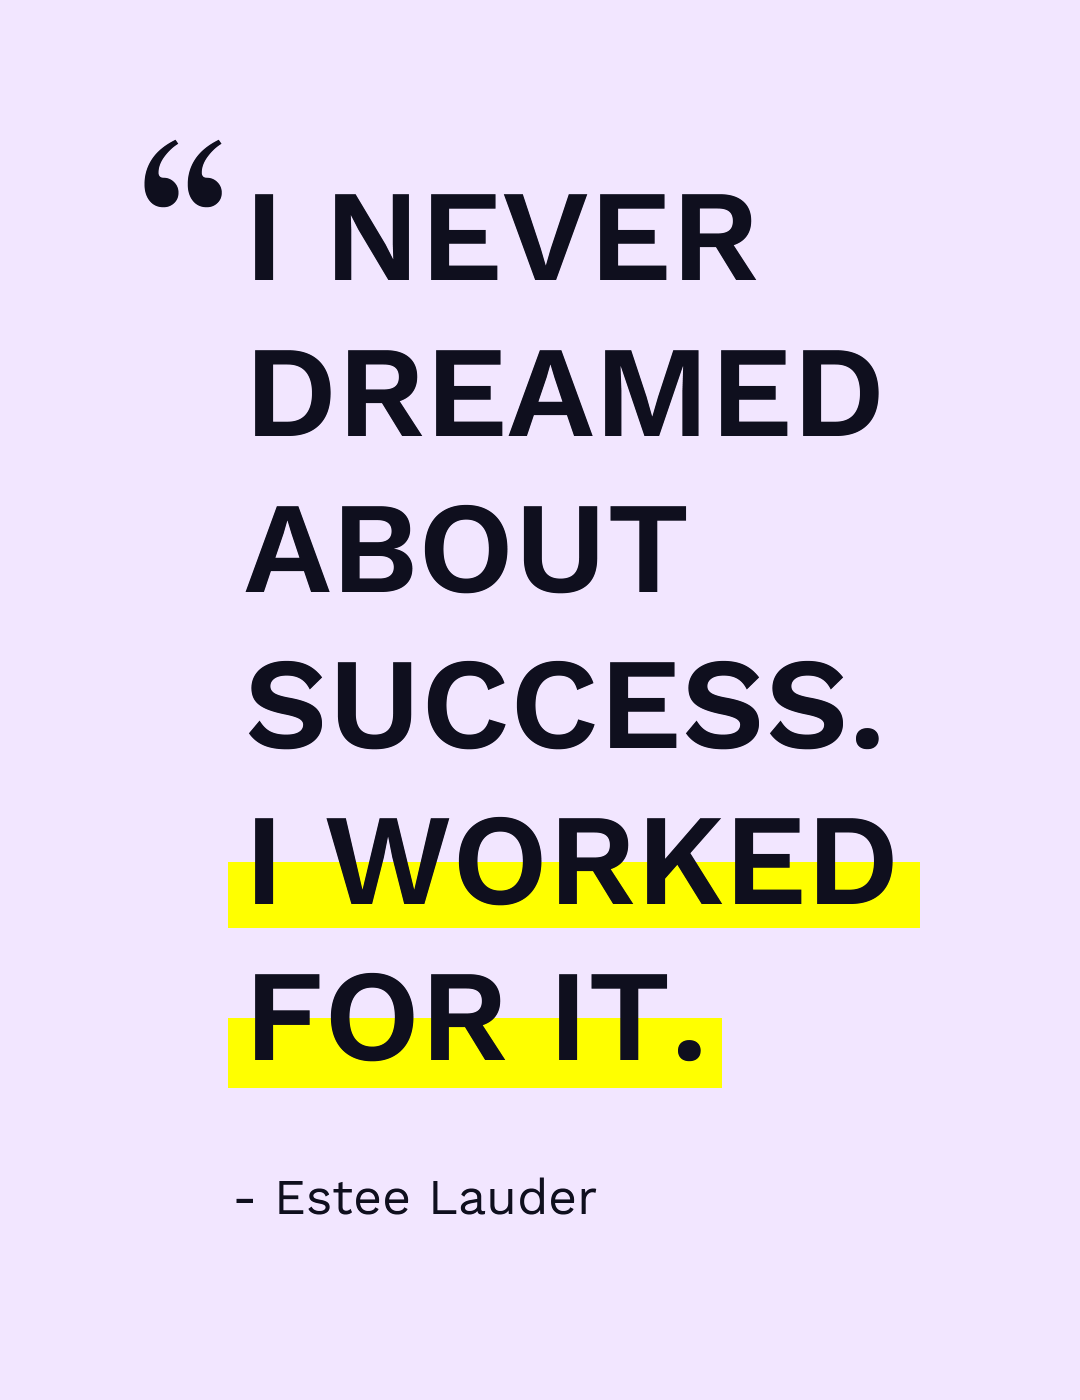 A text of Estee Lauder quote about success and personal goals